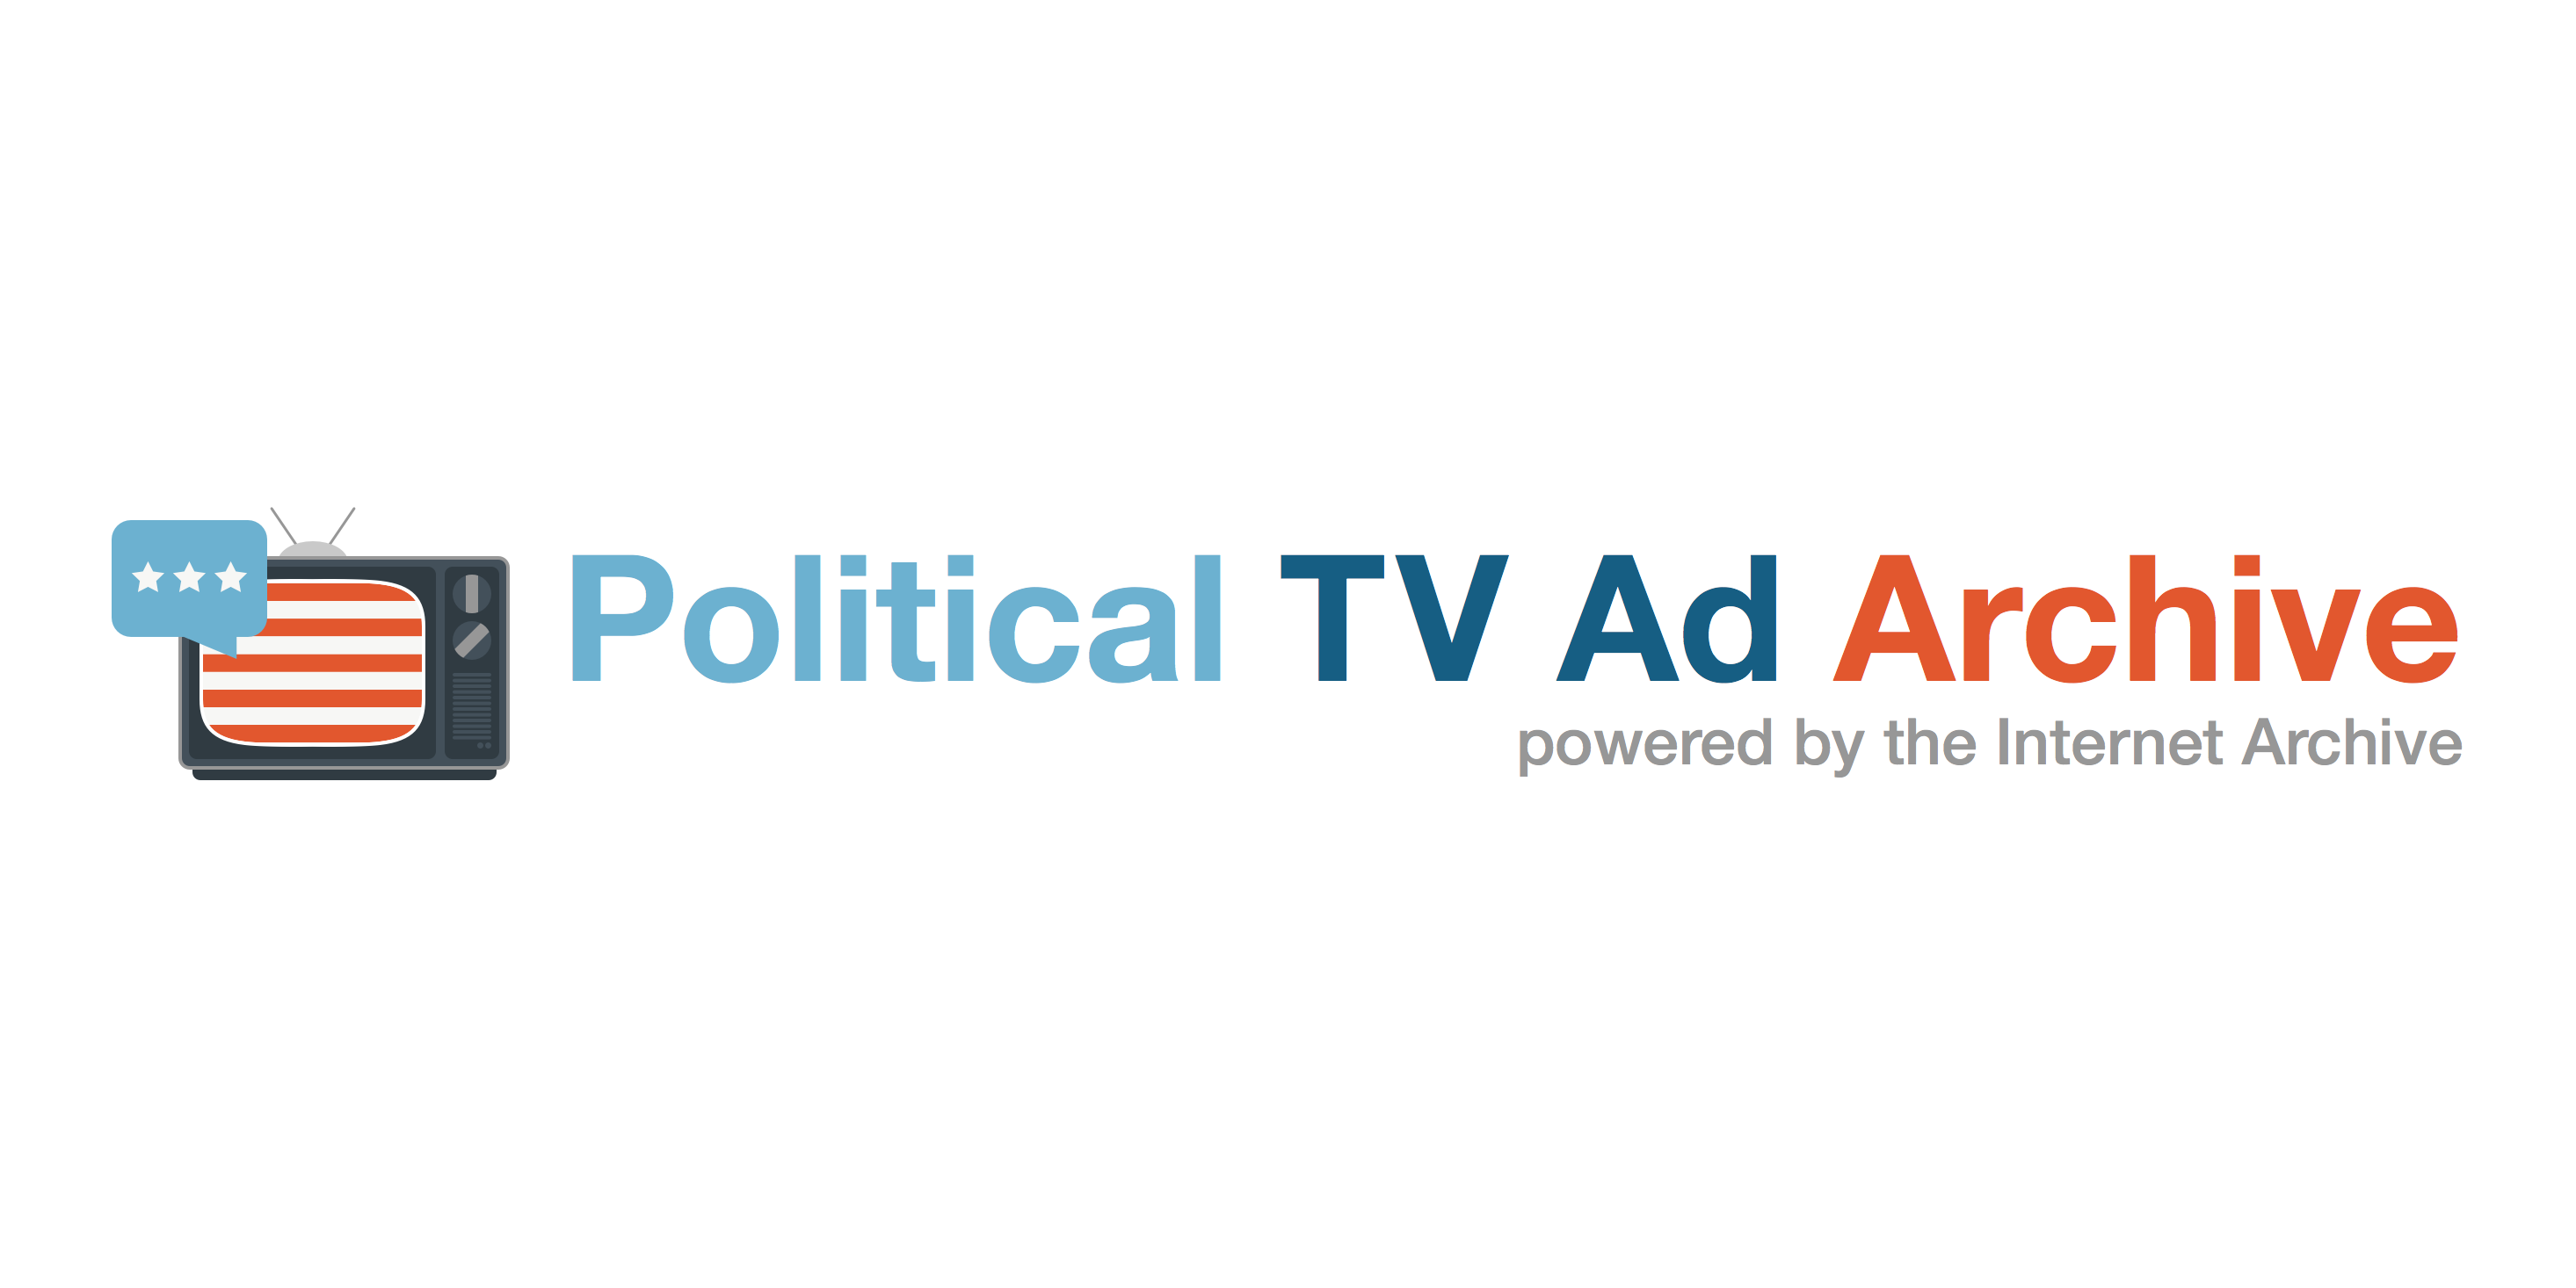 Political TV Ad Archive logo